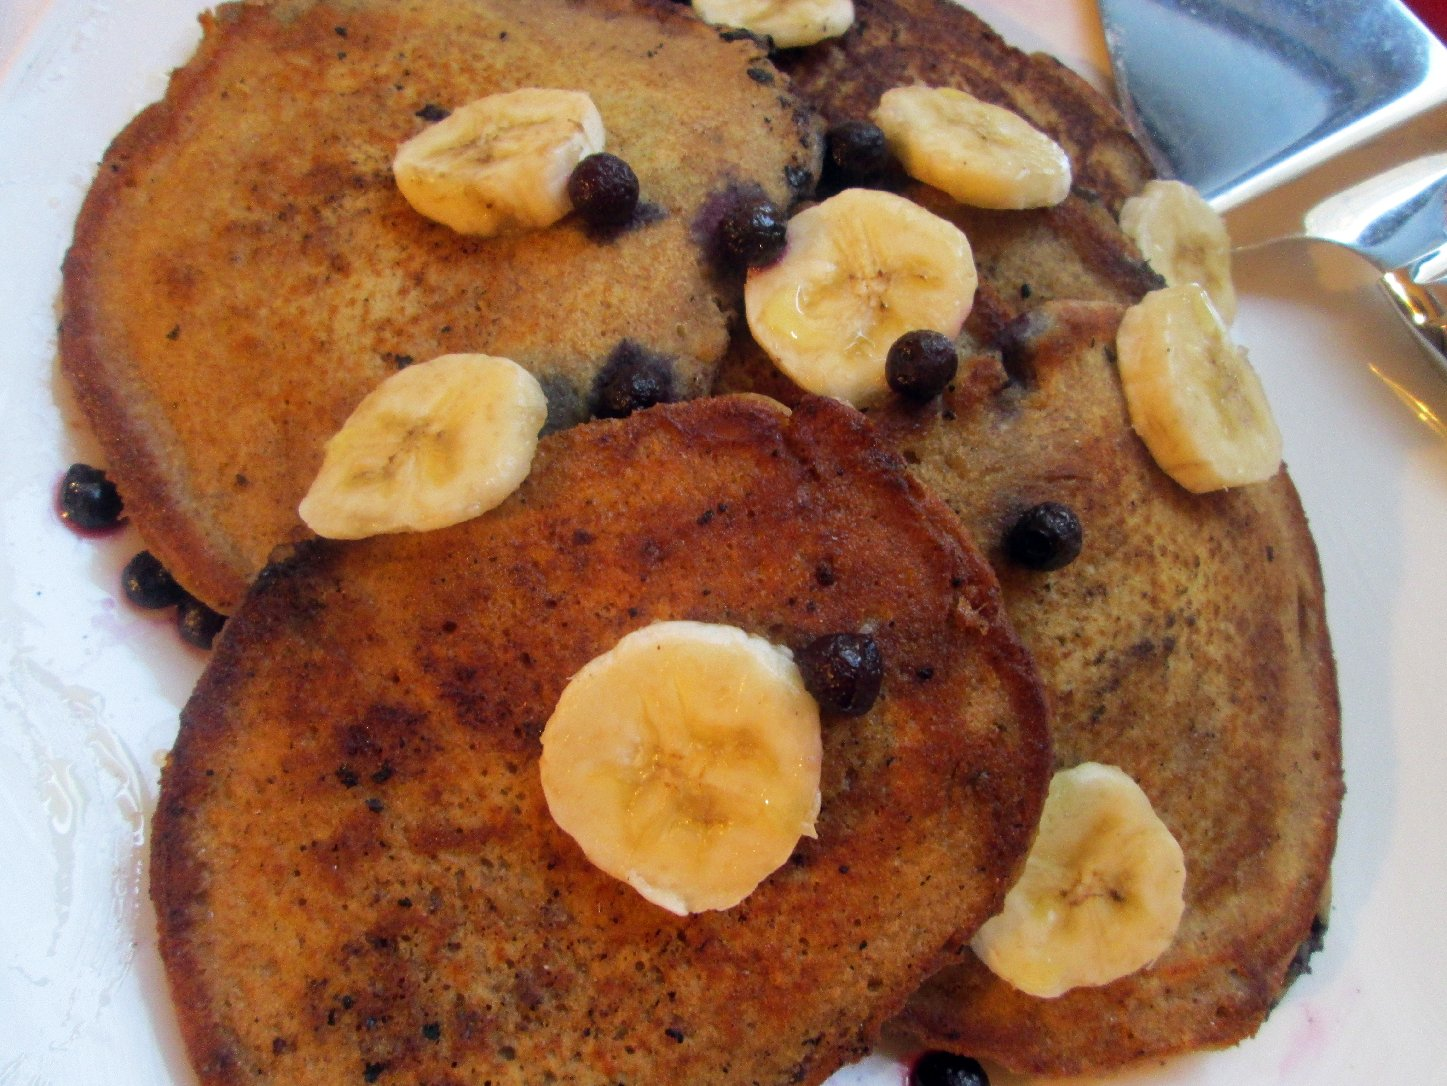 Whole Wheat Blueberry Banana Pancakes. Photo: Laura B. Weiss/NPR